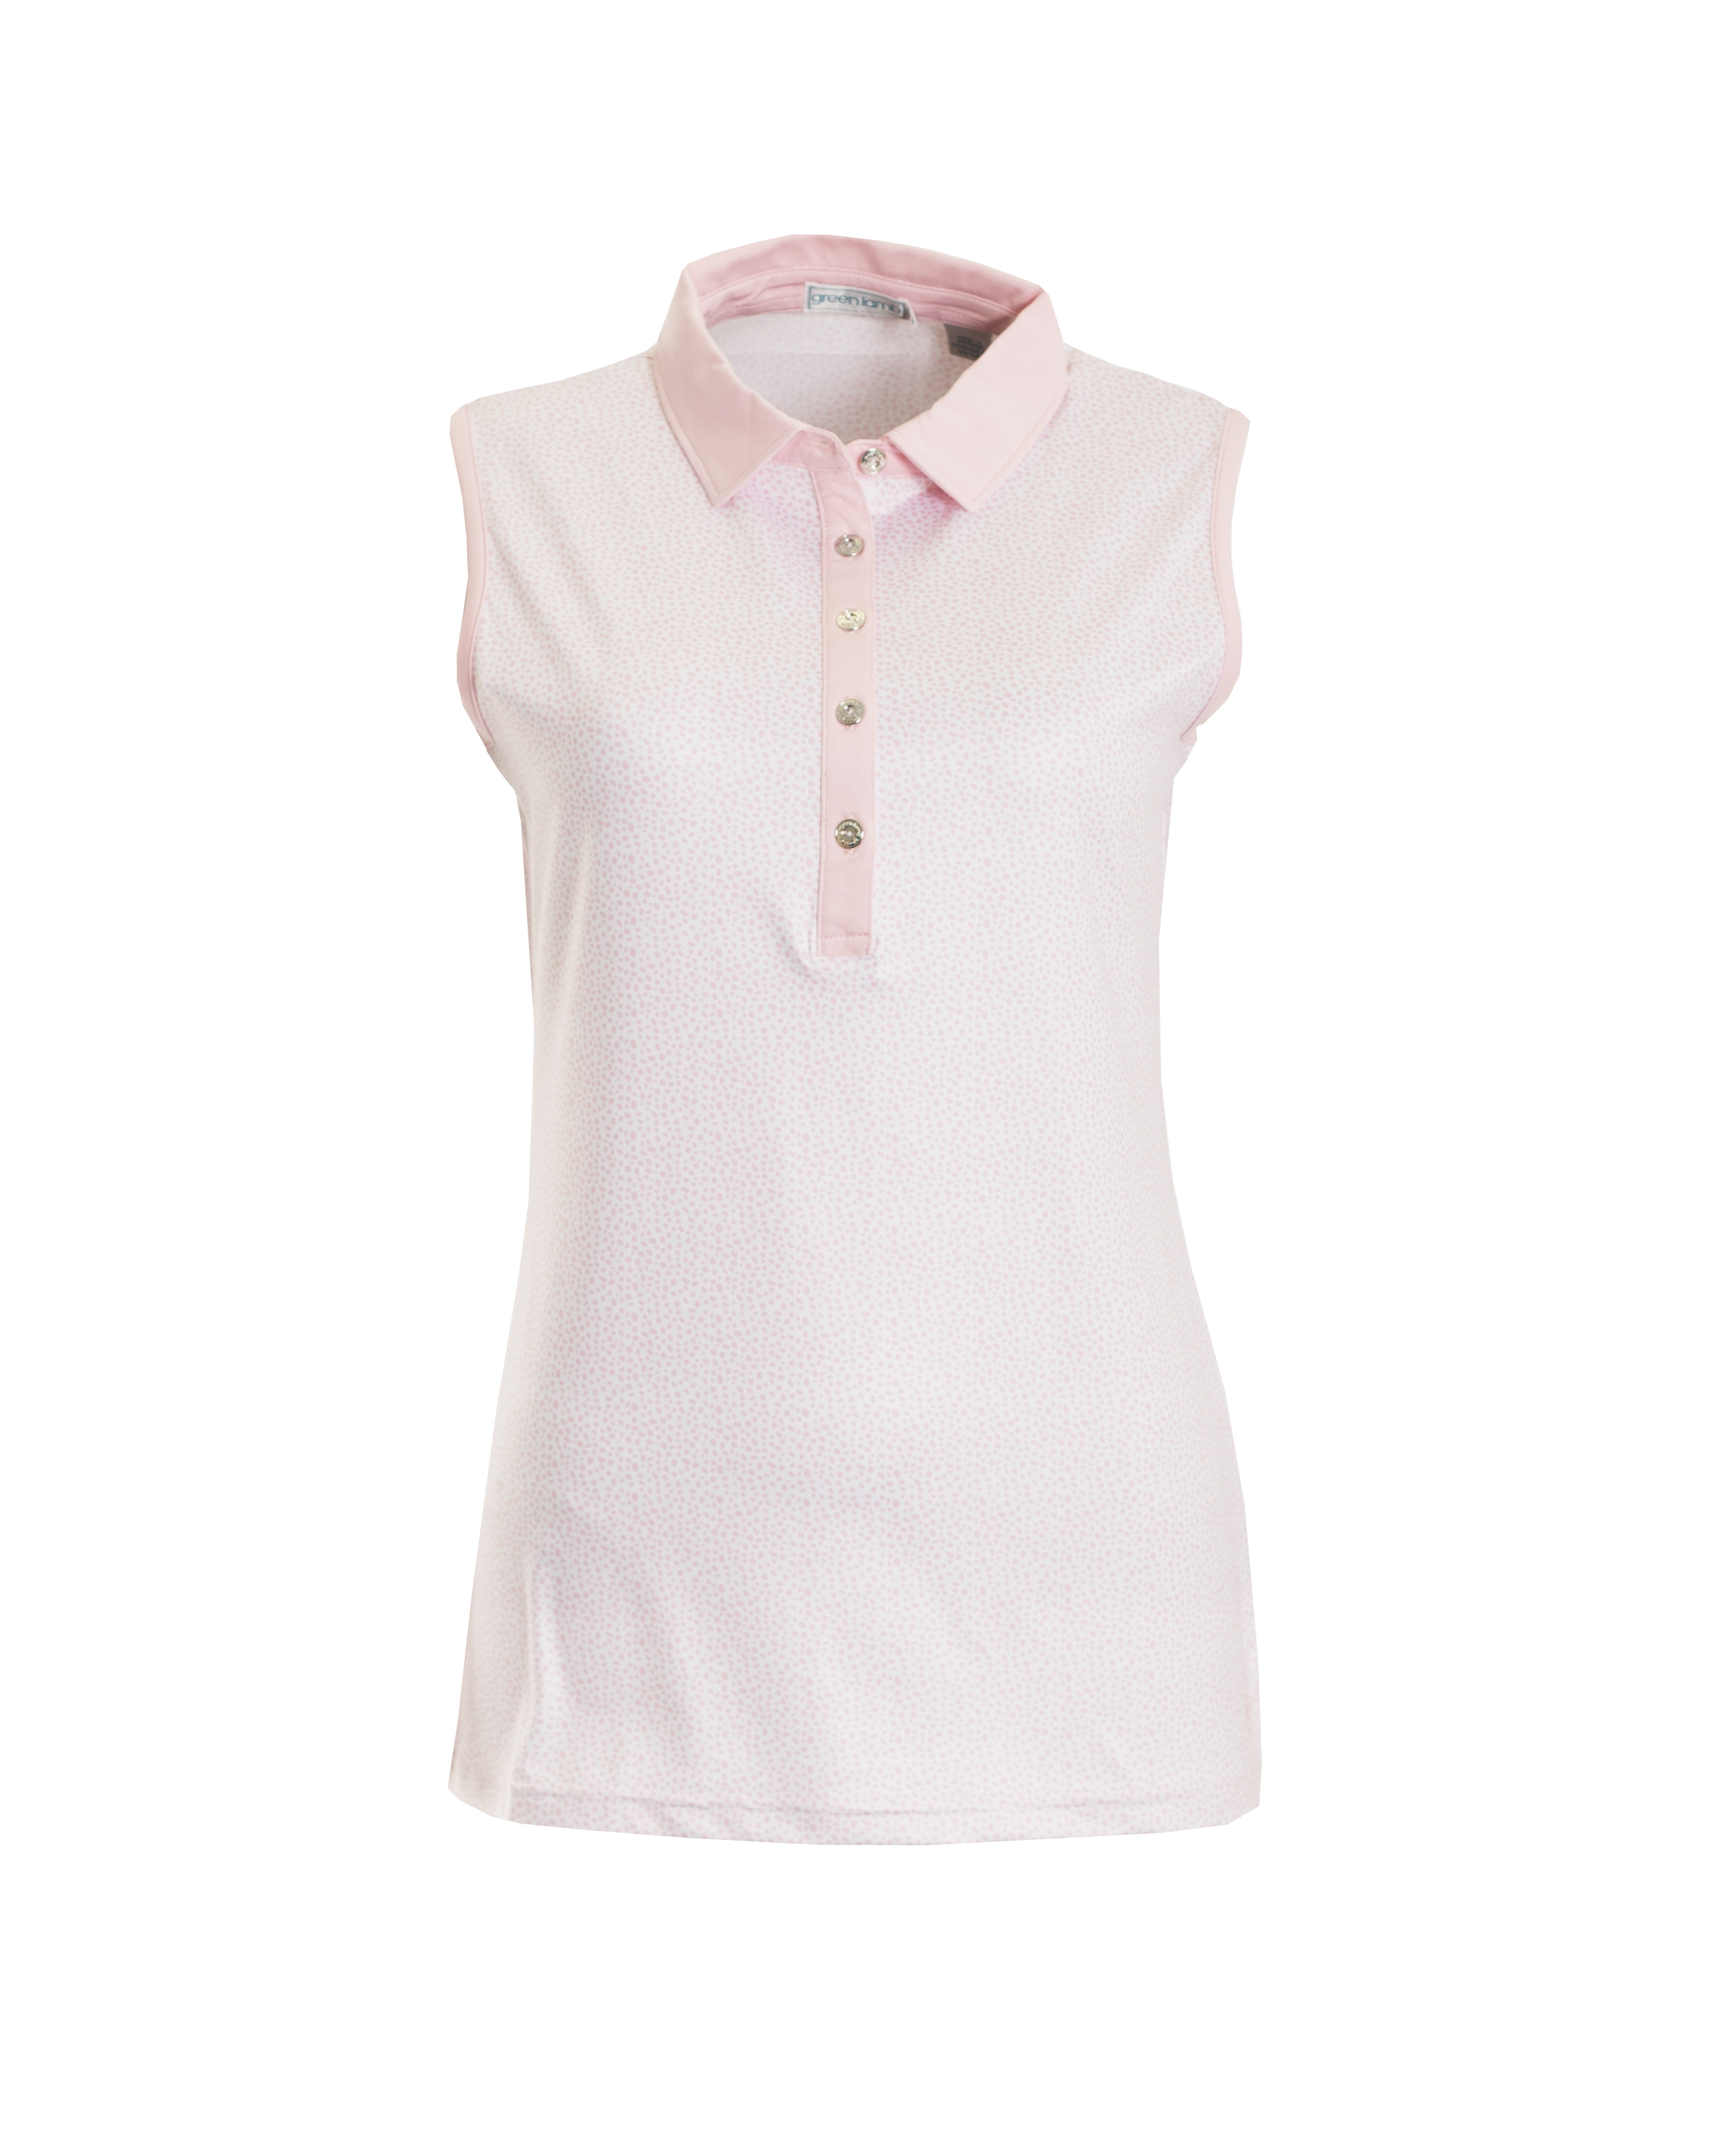 fb12f1f59a02df Ladies Sleeveless Polo Shirts – EDGE Engineering and Consulting Limited